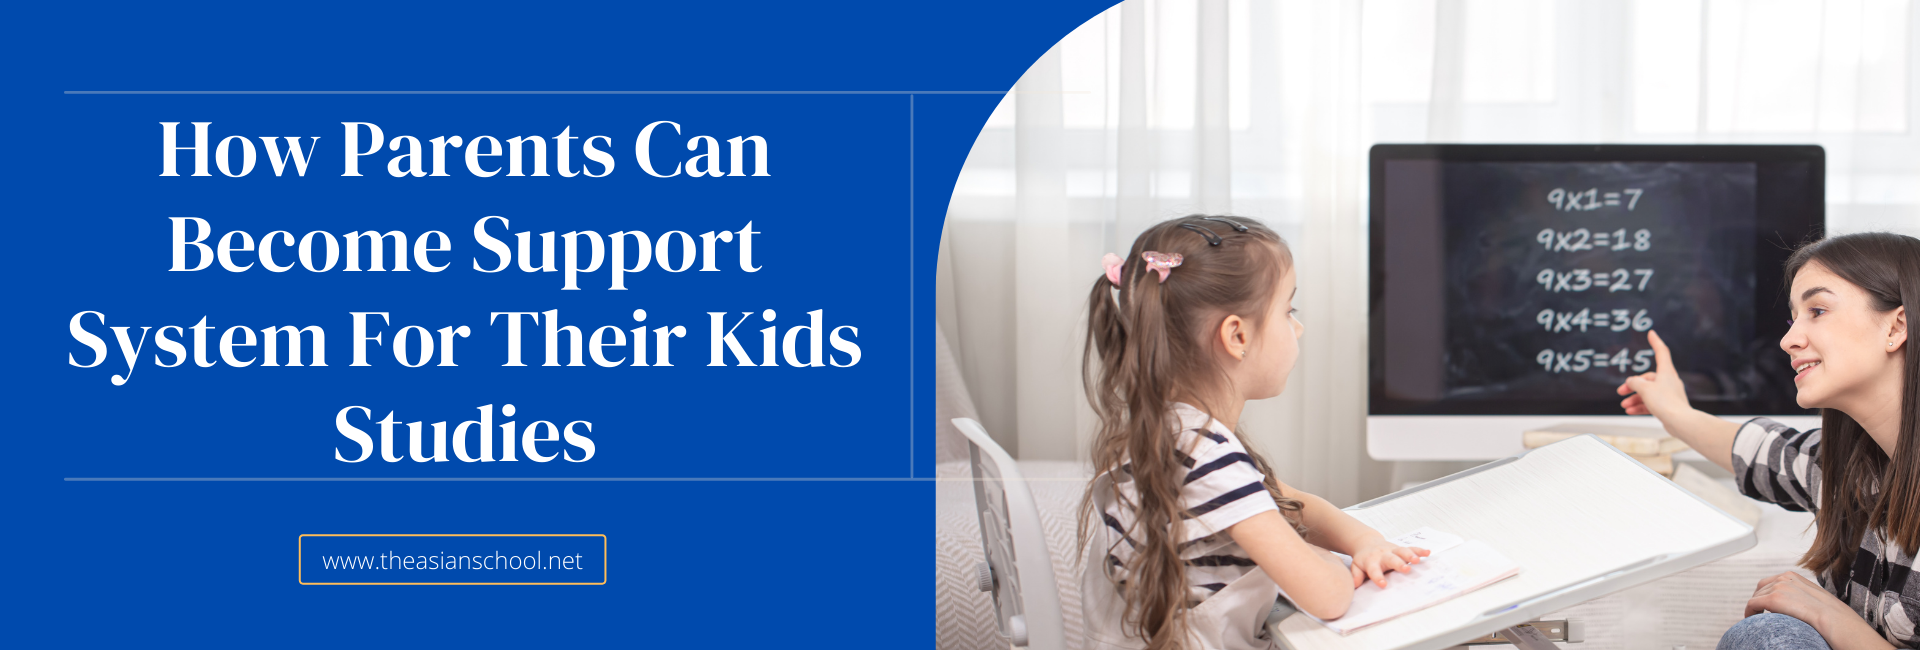 How Parents Can Become Support System For Their Kids Studies